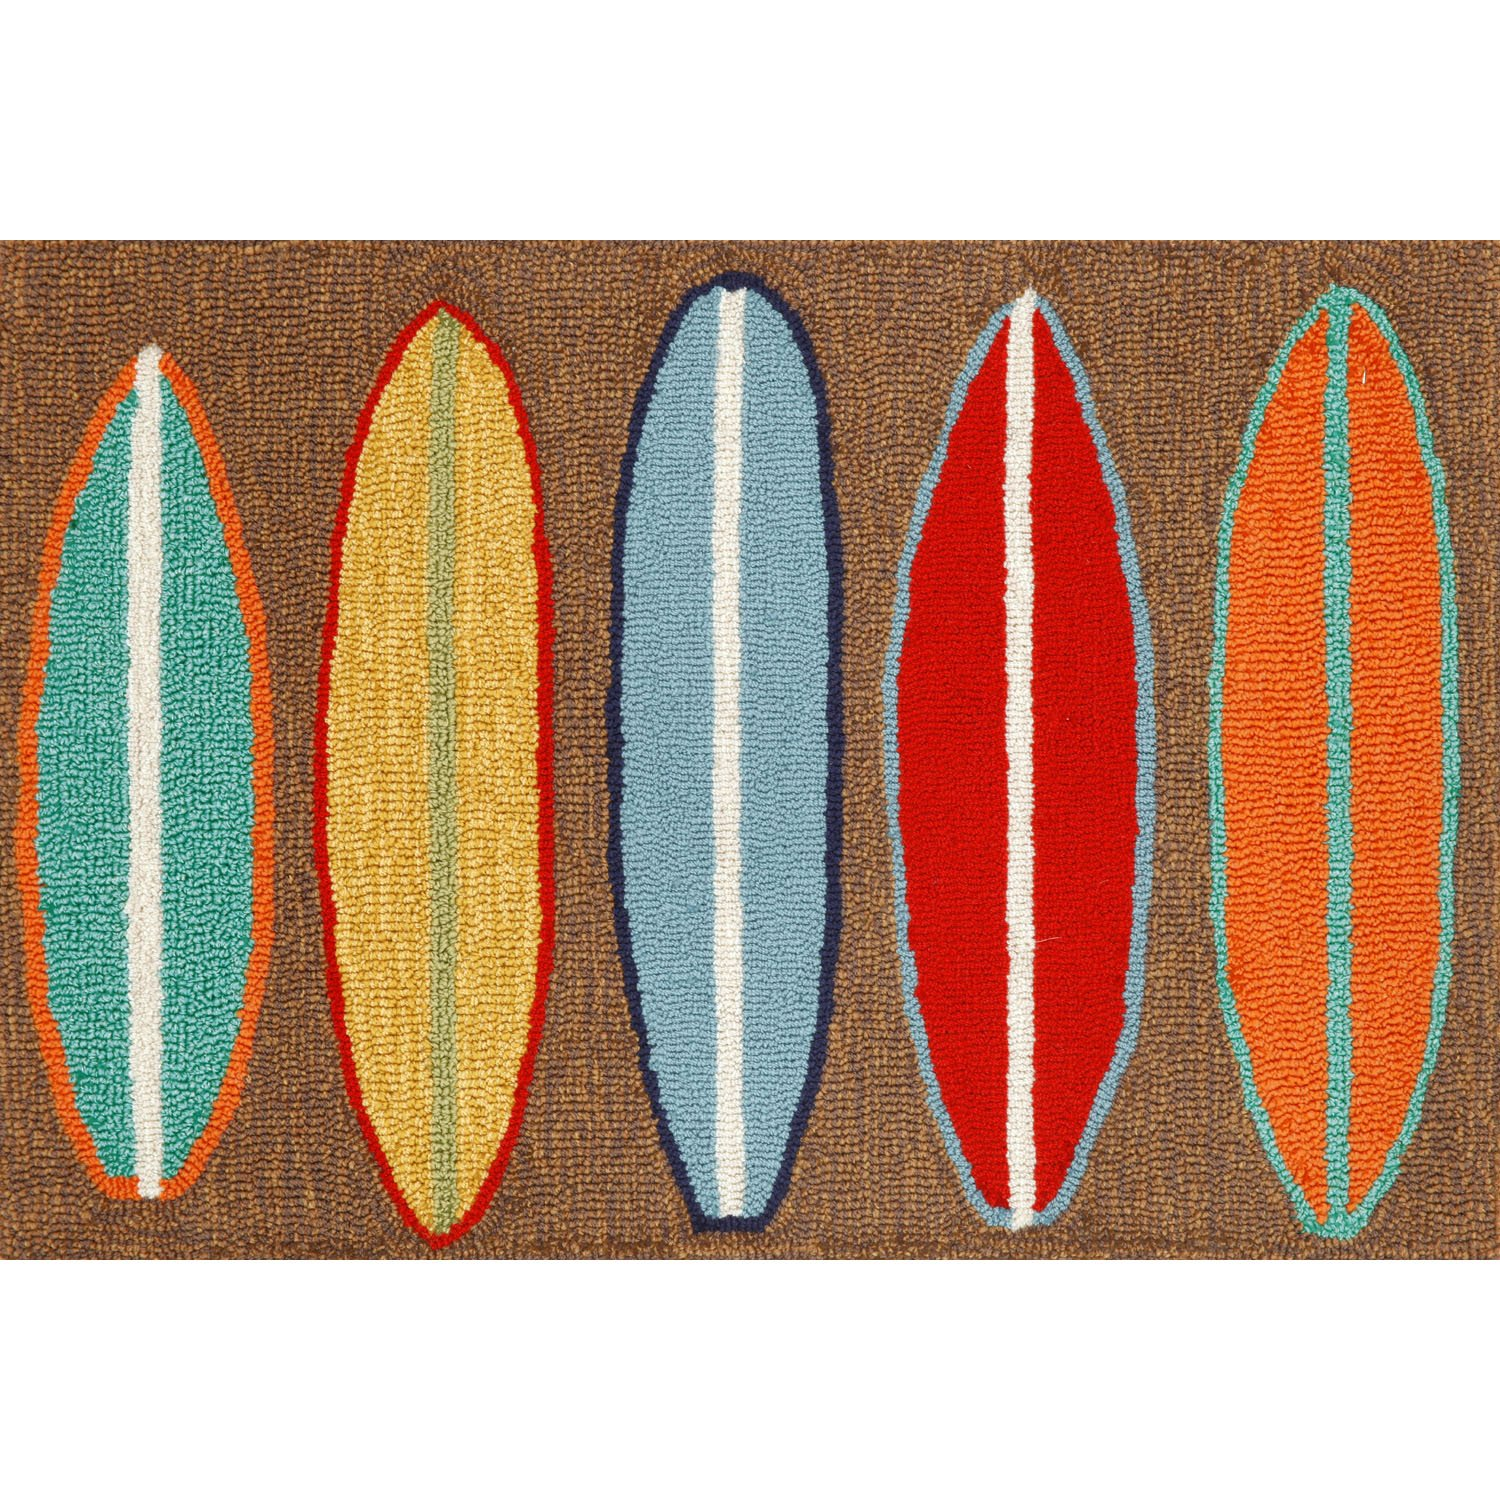 Liora Manne FT112A93319 Whimsy Beach Boards Rug, 20x 30, Brown 20x 30 The Trans Ocean Group